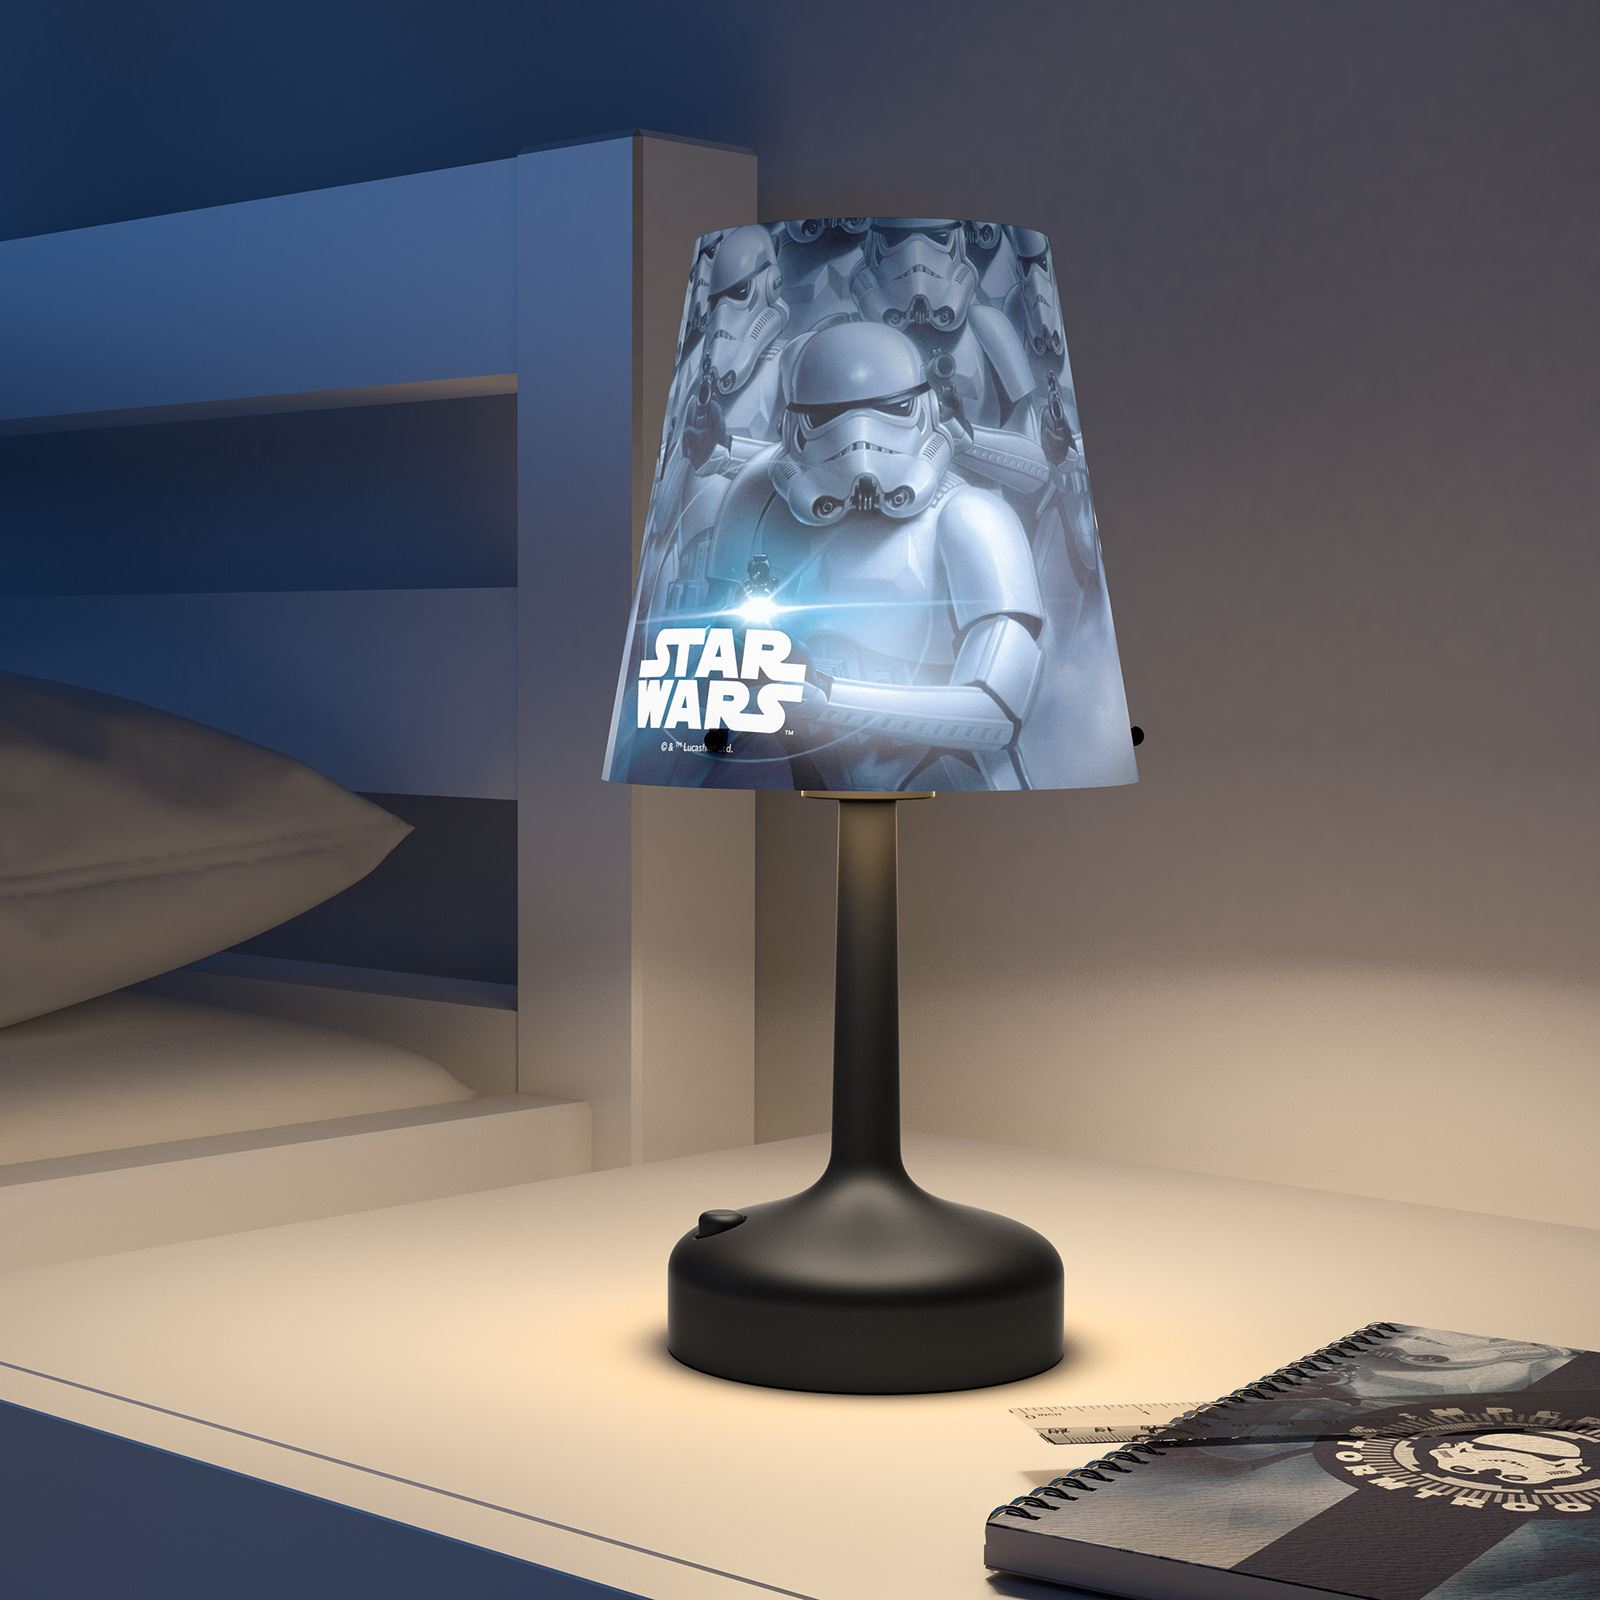 childrens bedroom lighting. STAR WARS STORMTROOPER PORTABLE TABLE LAMP - CHILDRENS BEDROOM LIGHTING  FREE P+P Childrens Bedroom Lighting 0